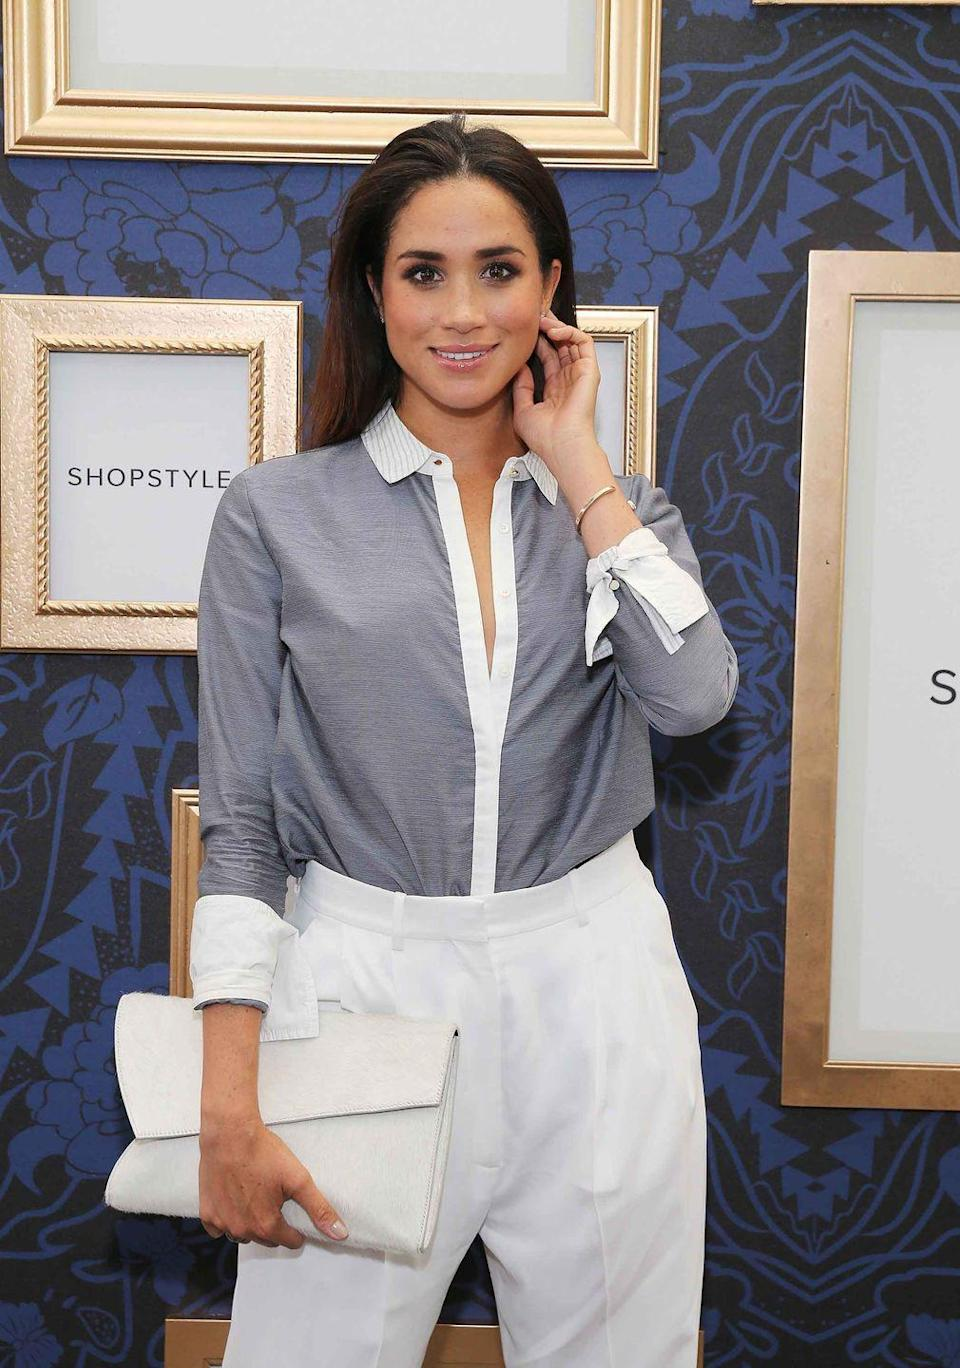 <p>She goes full-blown prep at an exclusive preview of the Marchesa Voyage for ShopStyle collection in New York City.</p>